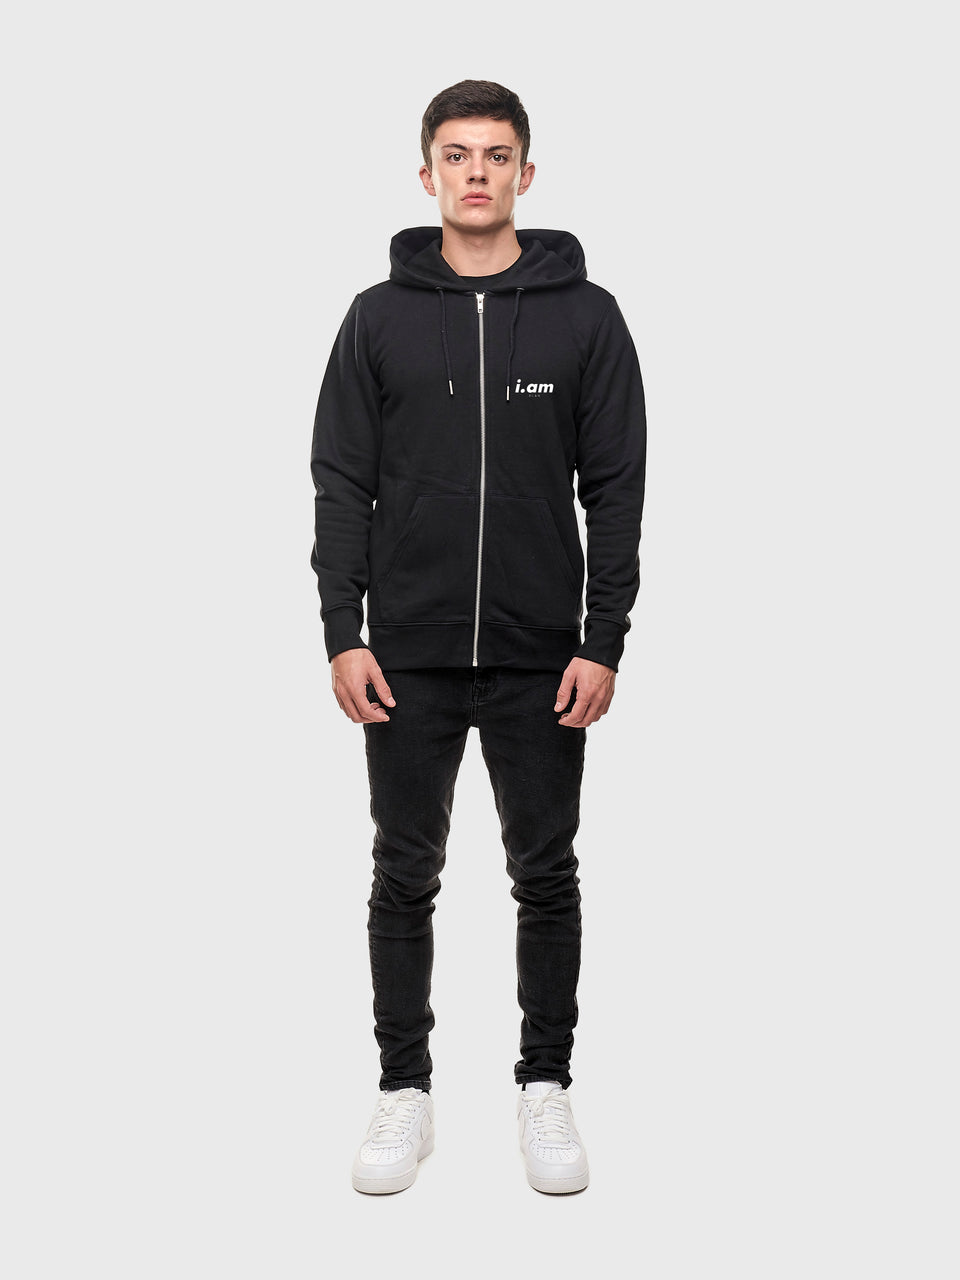 Making it - Black - Unisex zip up hoodie